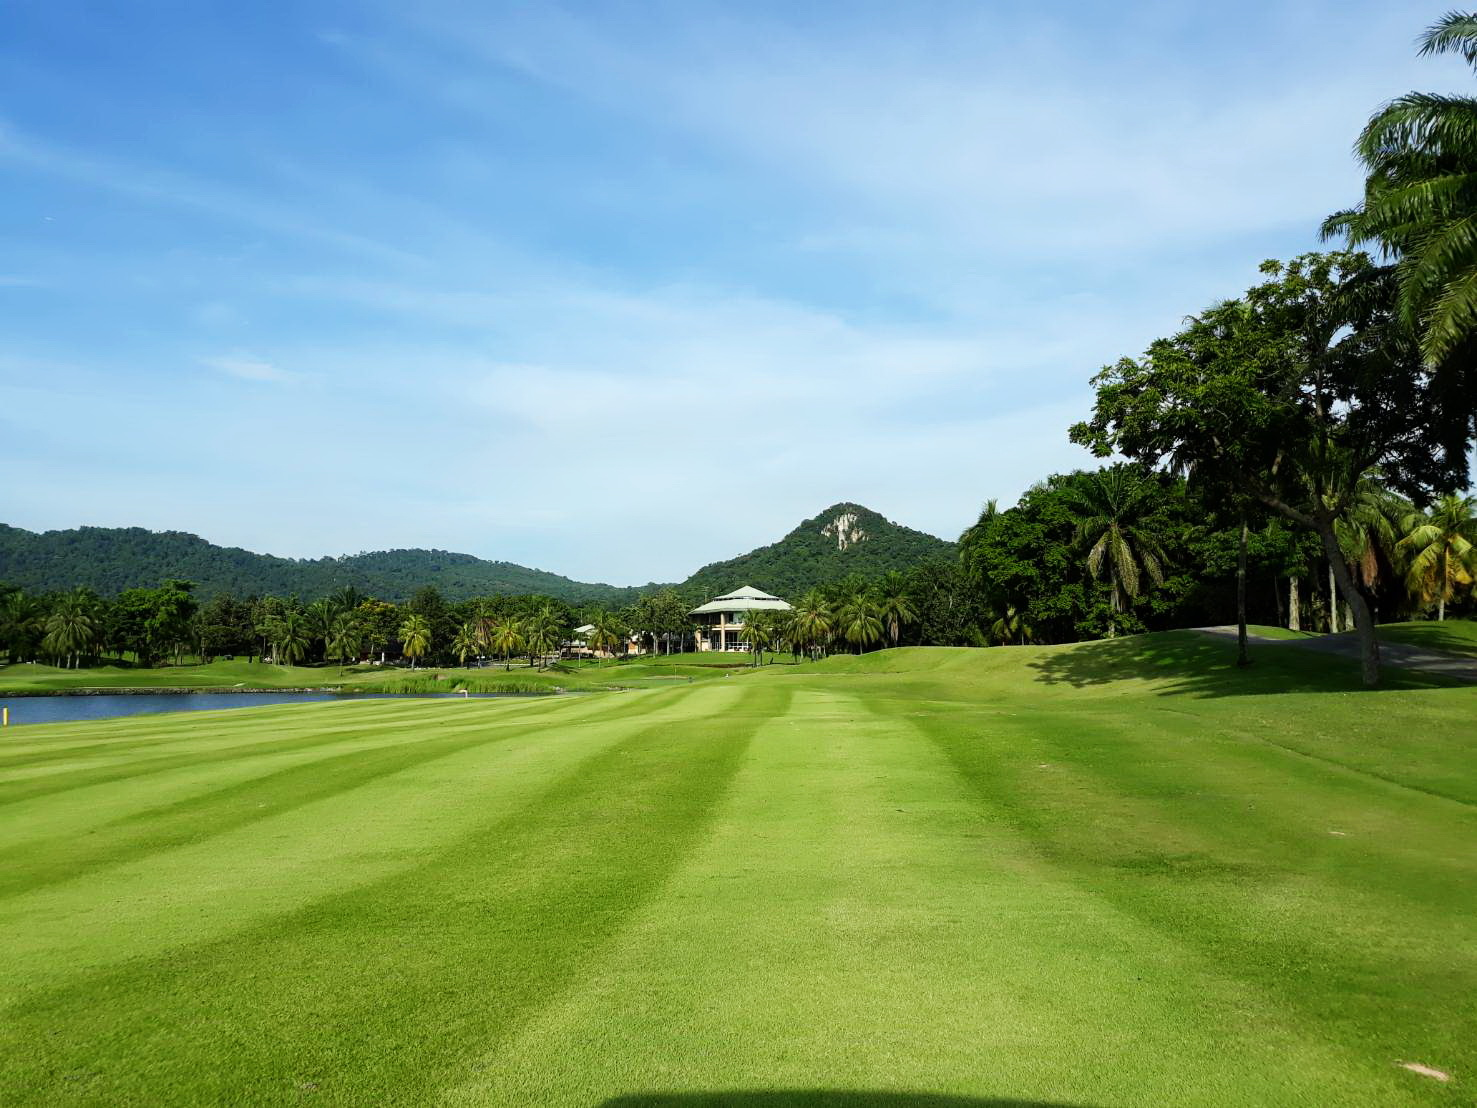 Khao Kheow Country Club